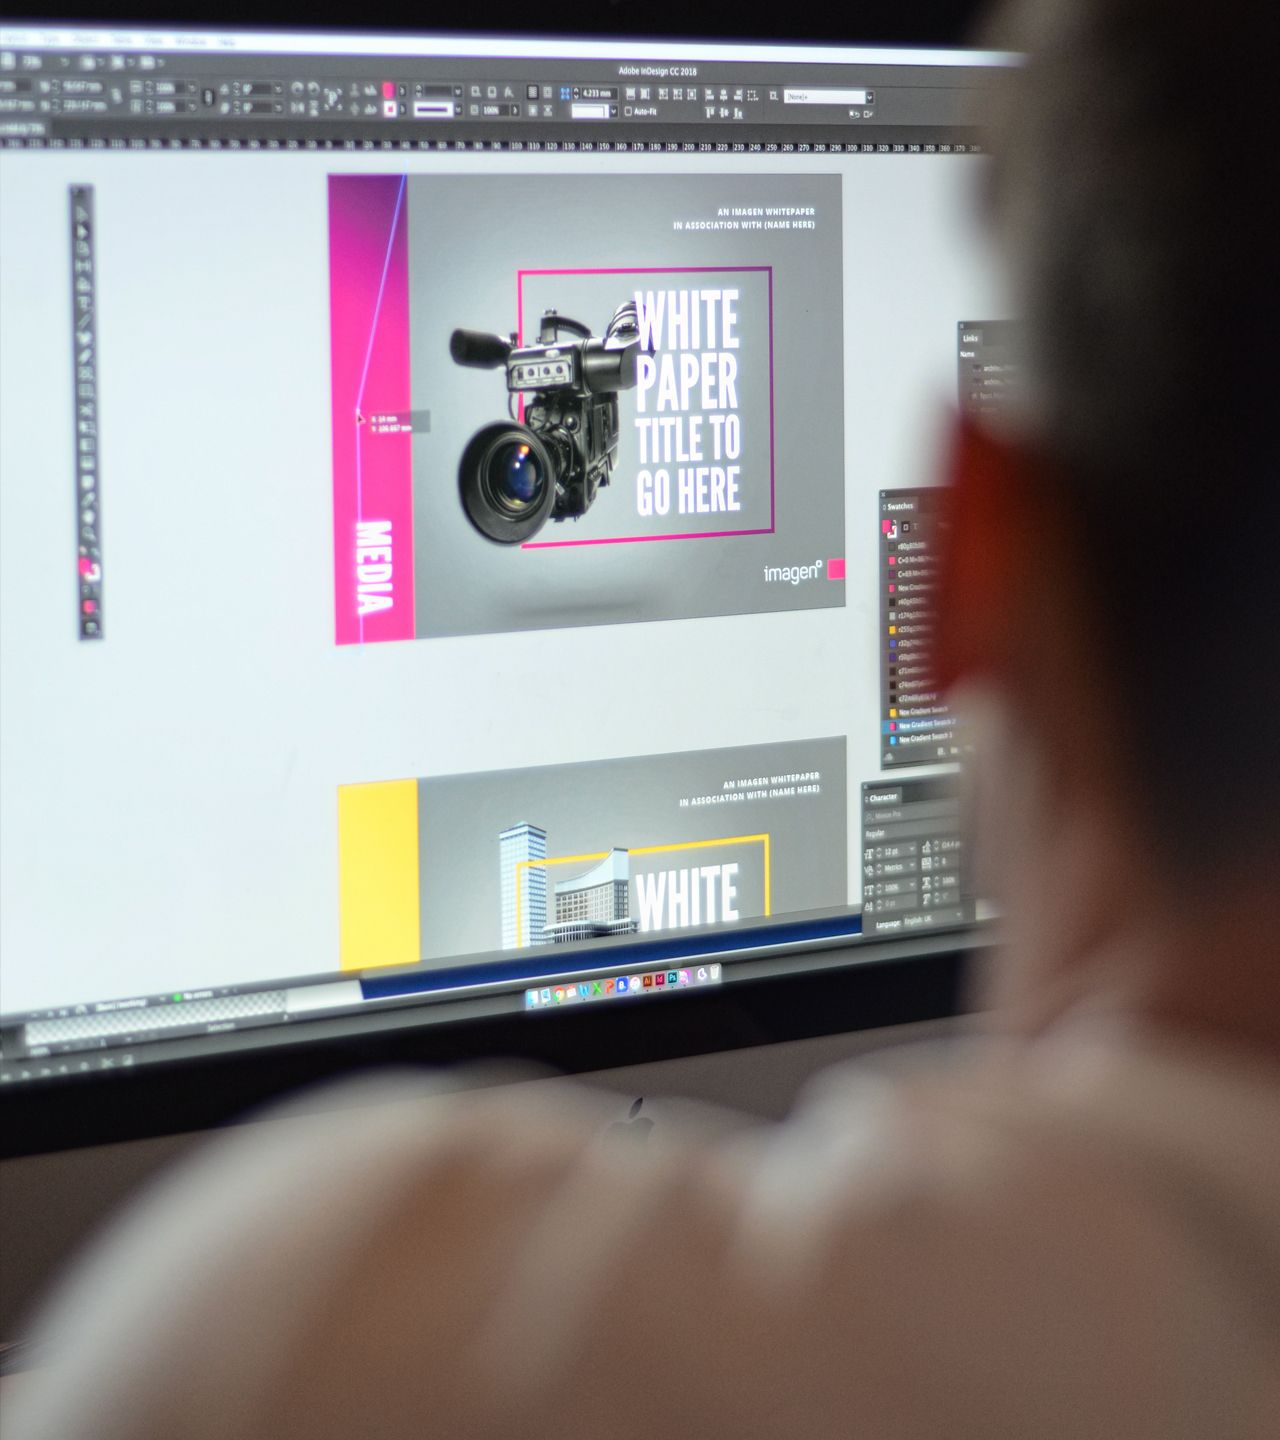 Cubiq design graphic design on screen